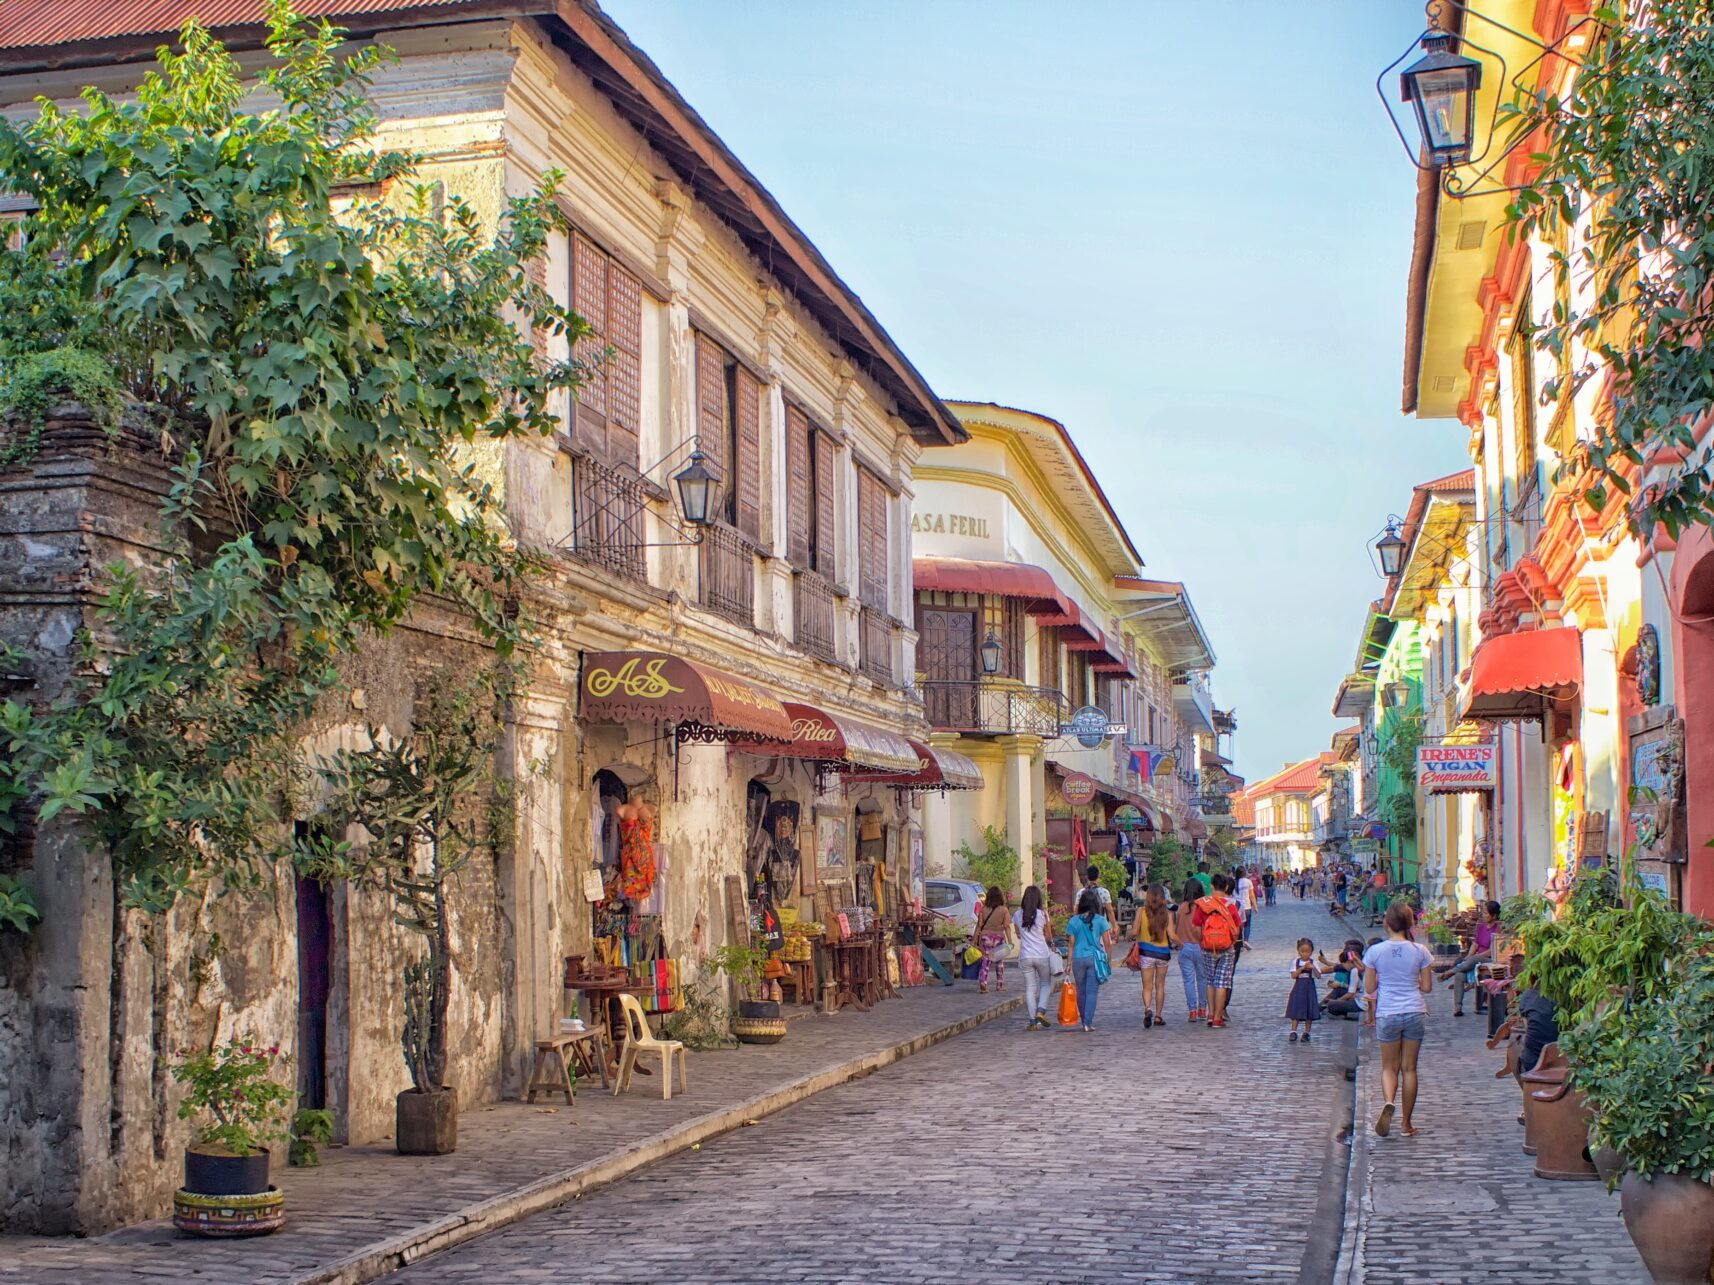 Vigan is the capital of the Province of Ilocos Sur